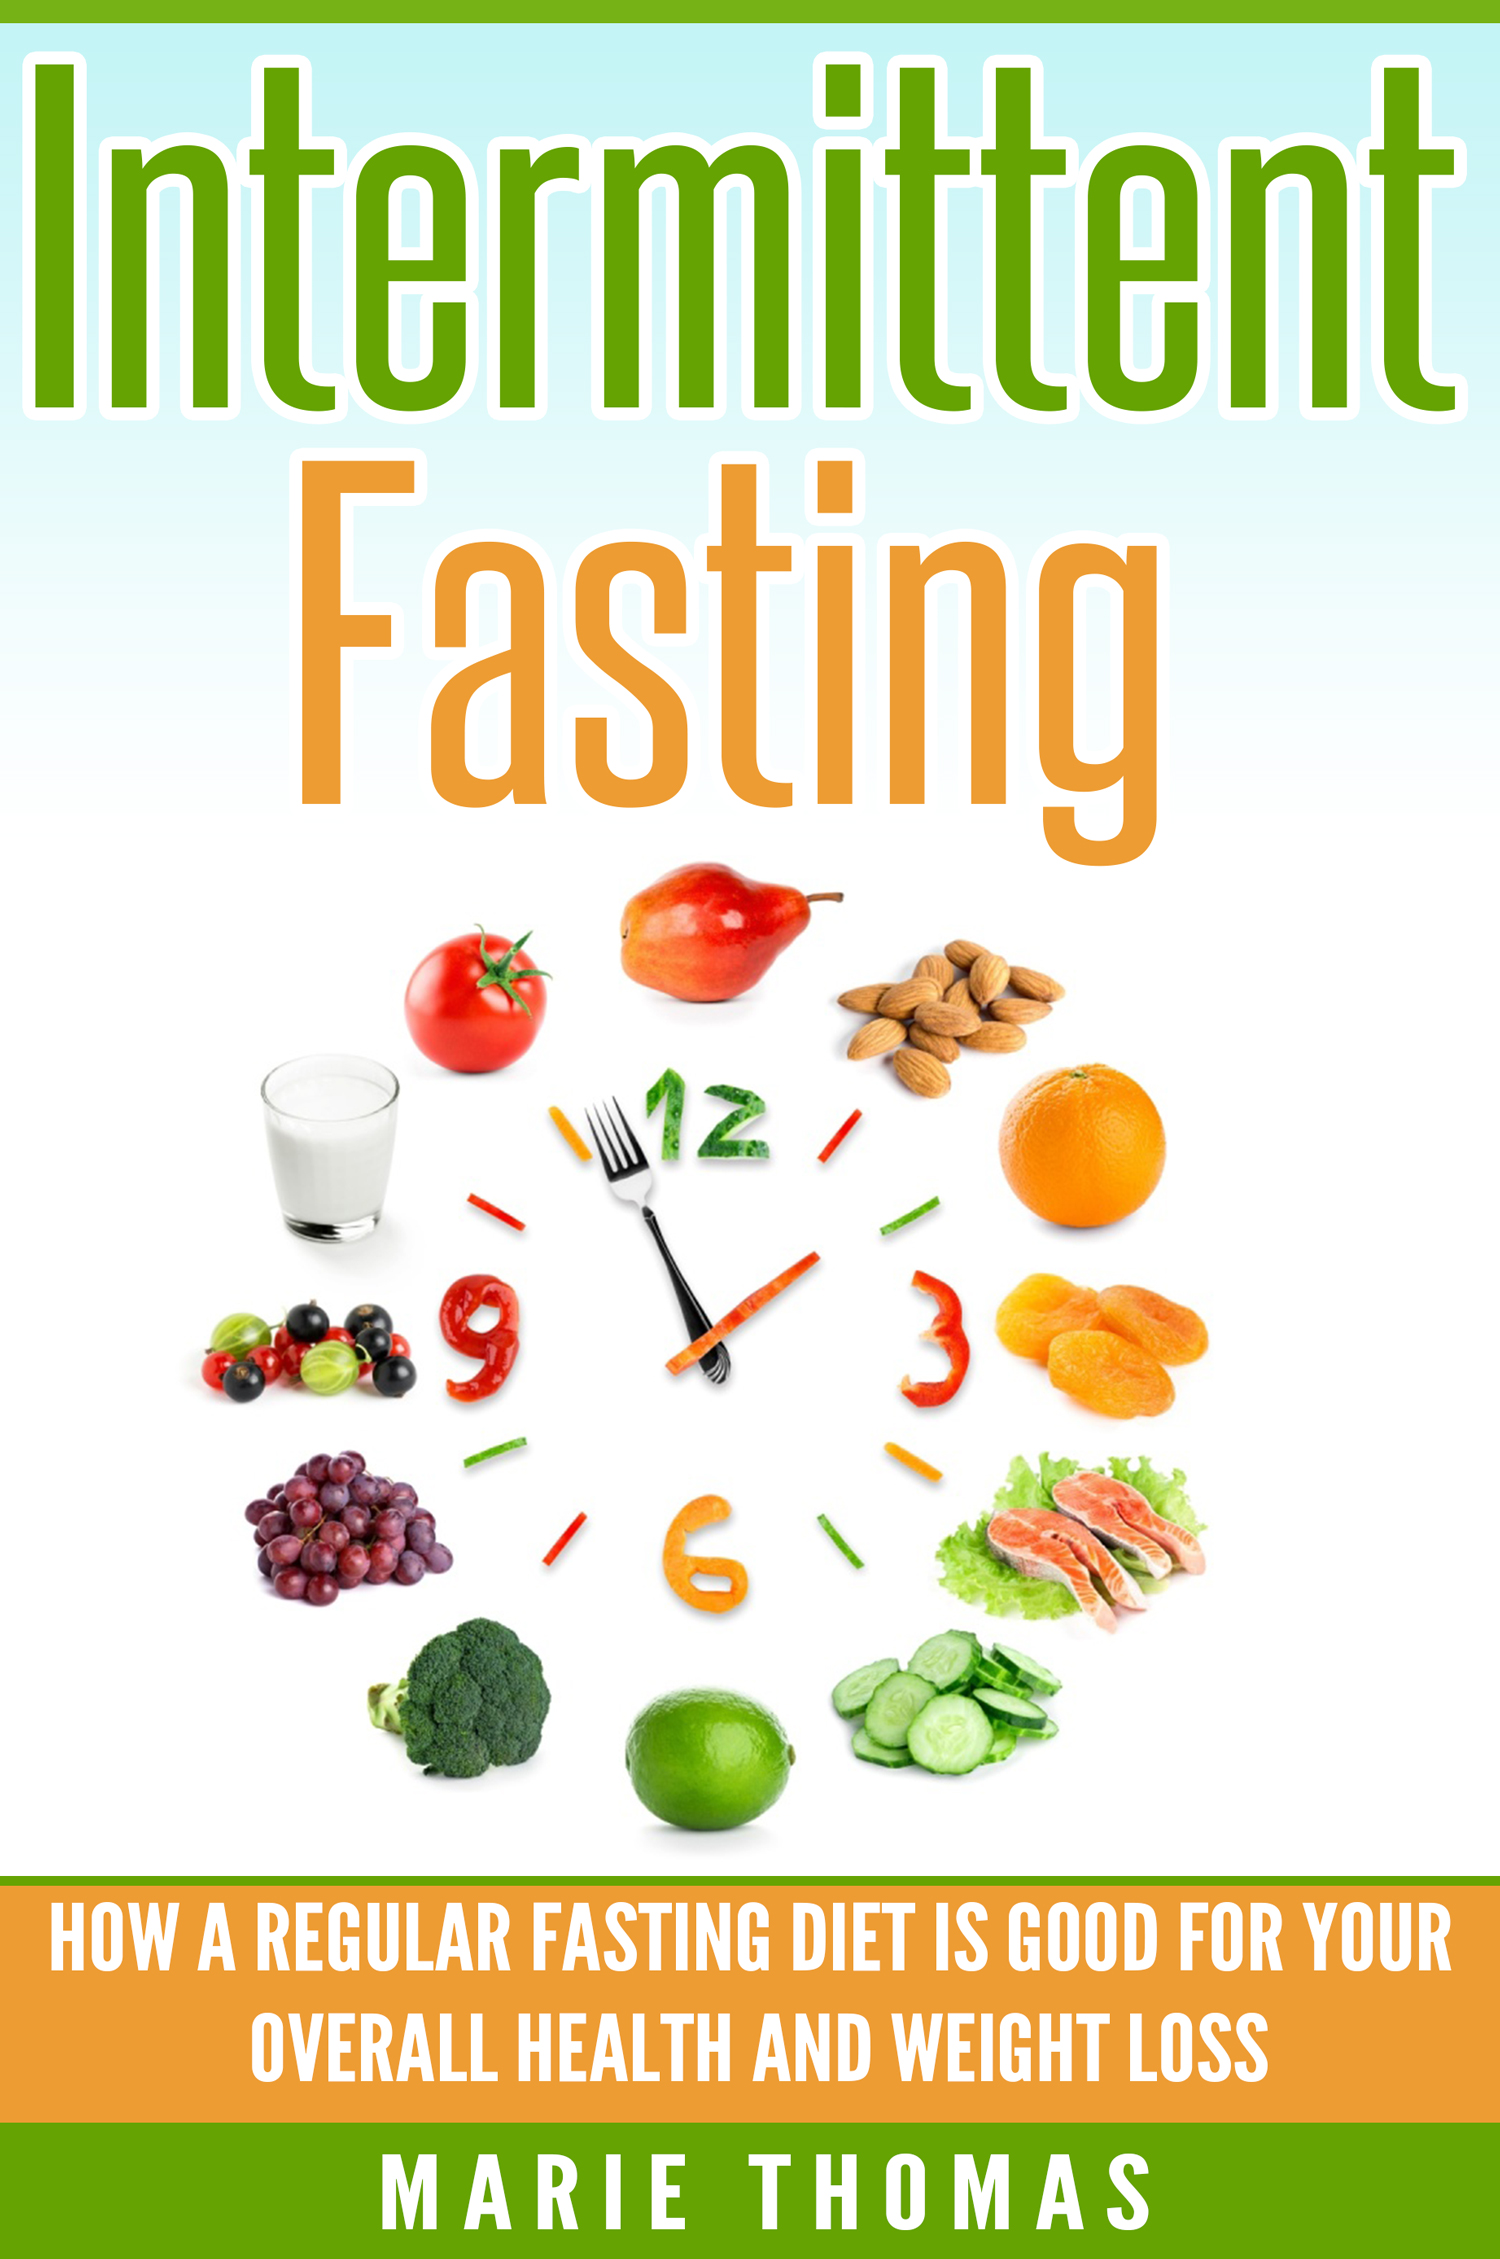 Intermittent Fasting Book Cover